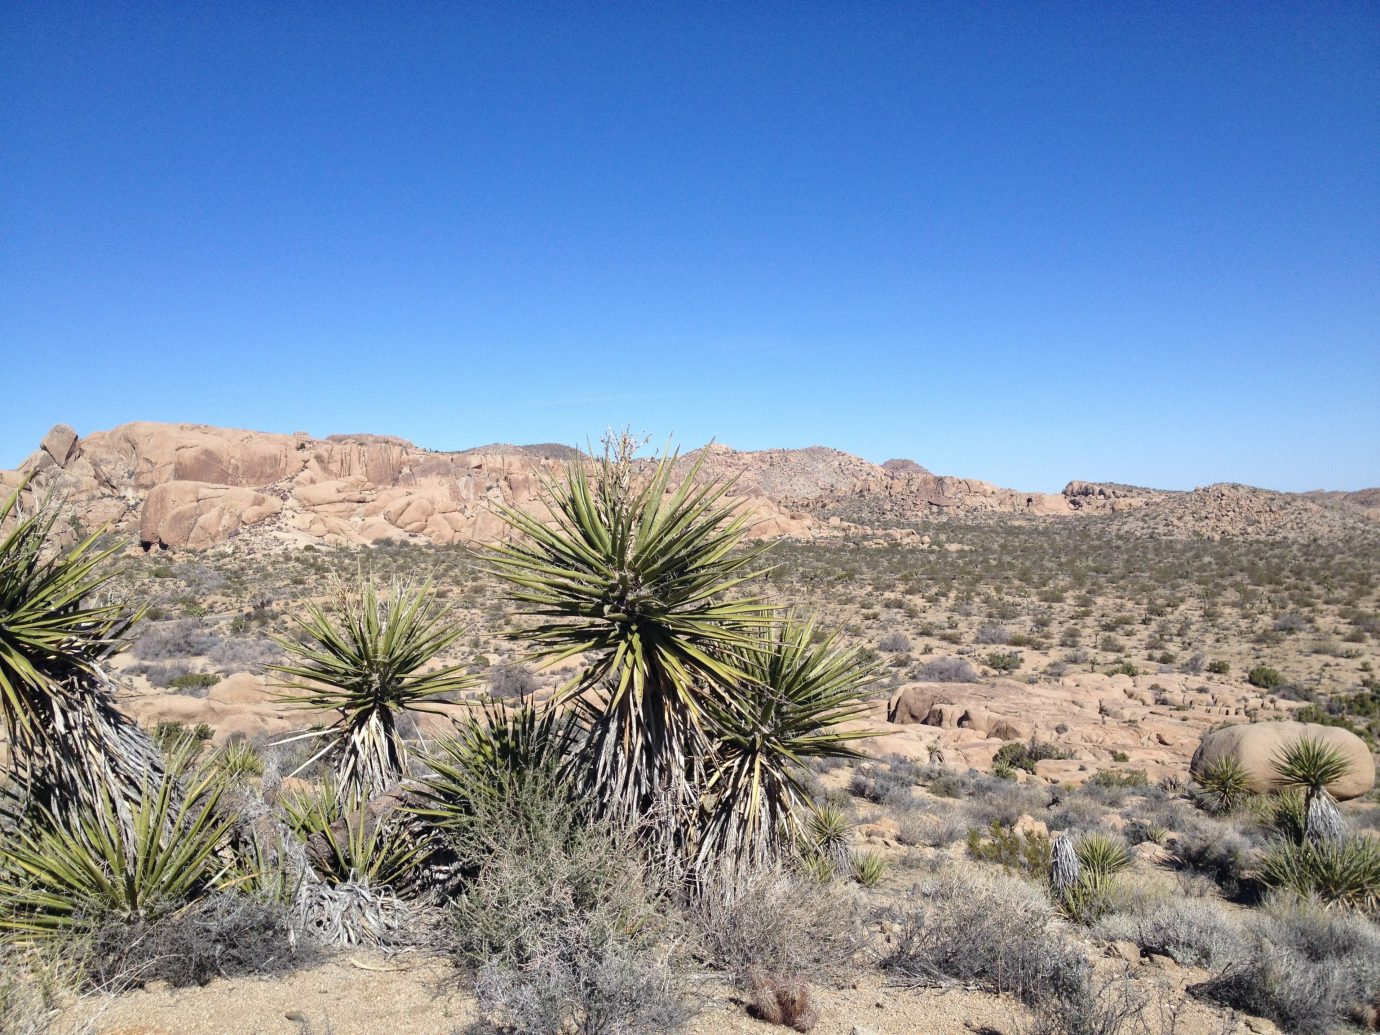 Trip Ideas sky outdoor Desert plant natural environment landform geographical feature wilderness aeolian landform tree ecosystem mountain wadi landscape rock vacation Lake arecales valley plateau sand dry sahara geology dirt area bushes agave